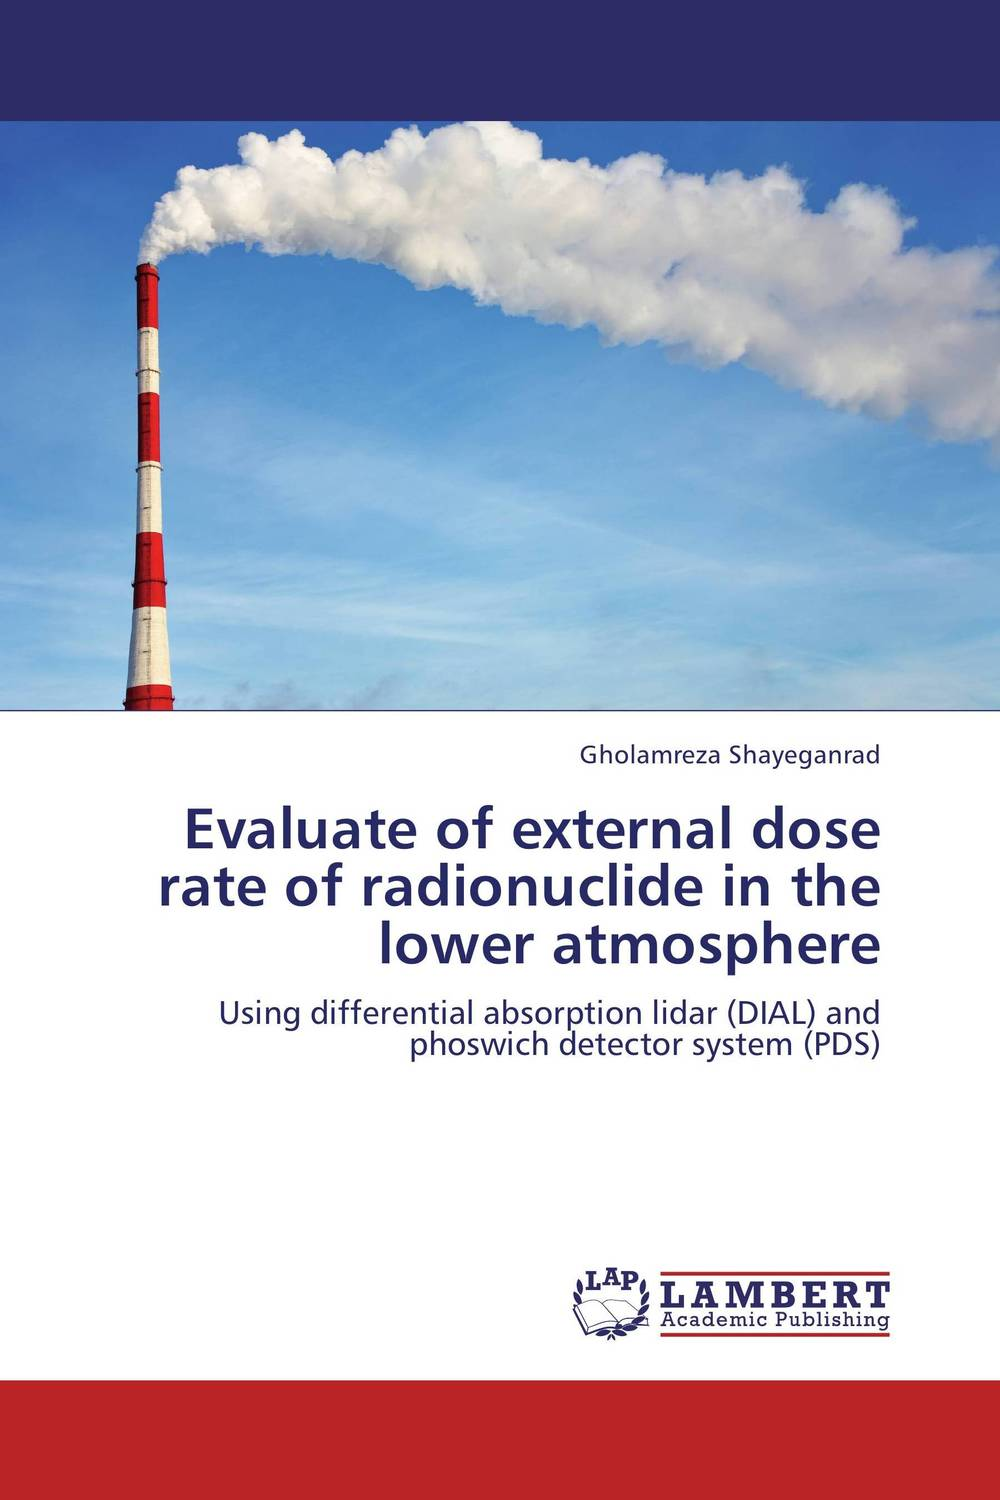 Evaluate of external dose rate of radionuclide in the lower atmosphere the comedy of errors